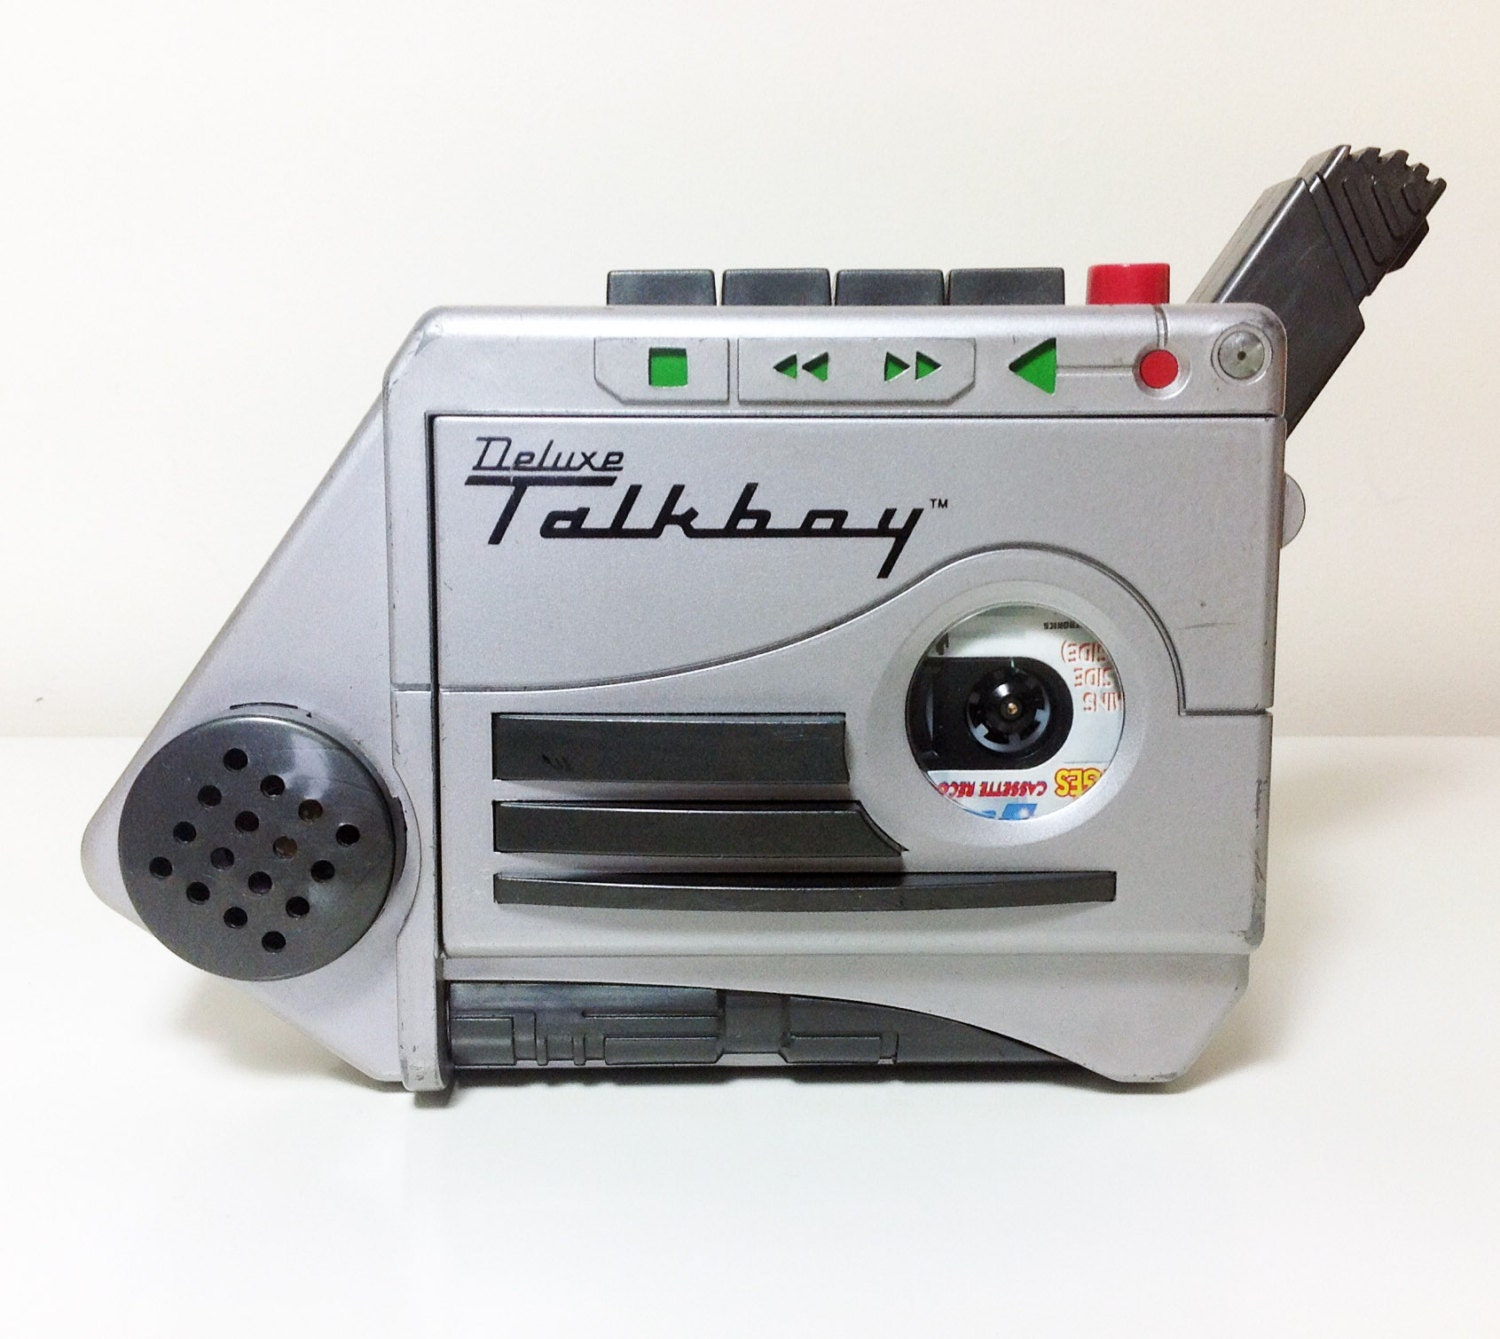 Vintage Tiger Talkboy Voice Modulator Talk Boy Home Alone Etsy Circuit Bent Casio Sk1 Sampling Keyboard Aliendevices 50